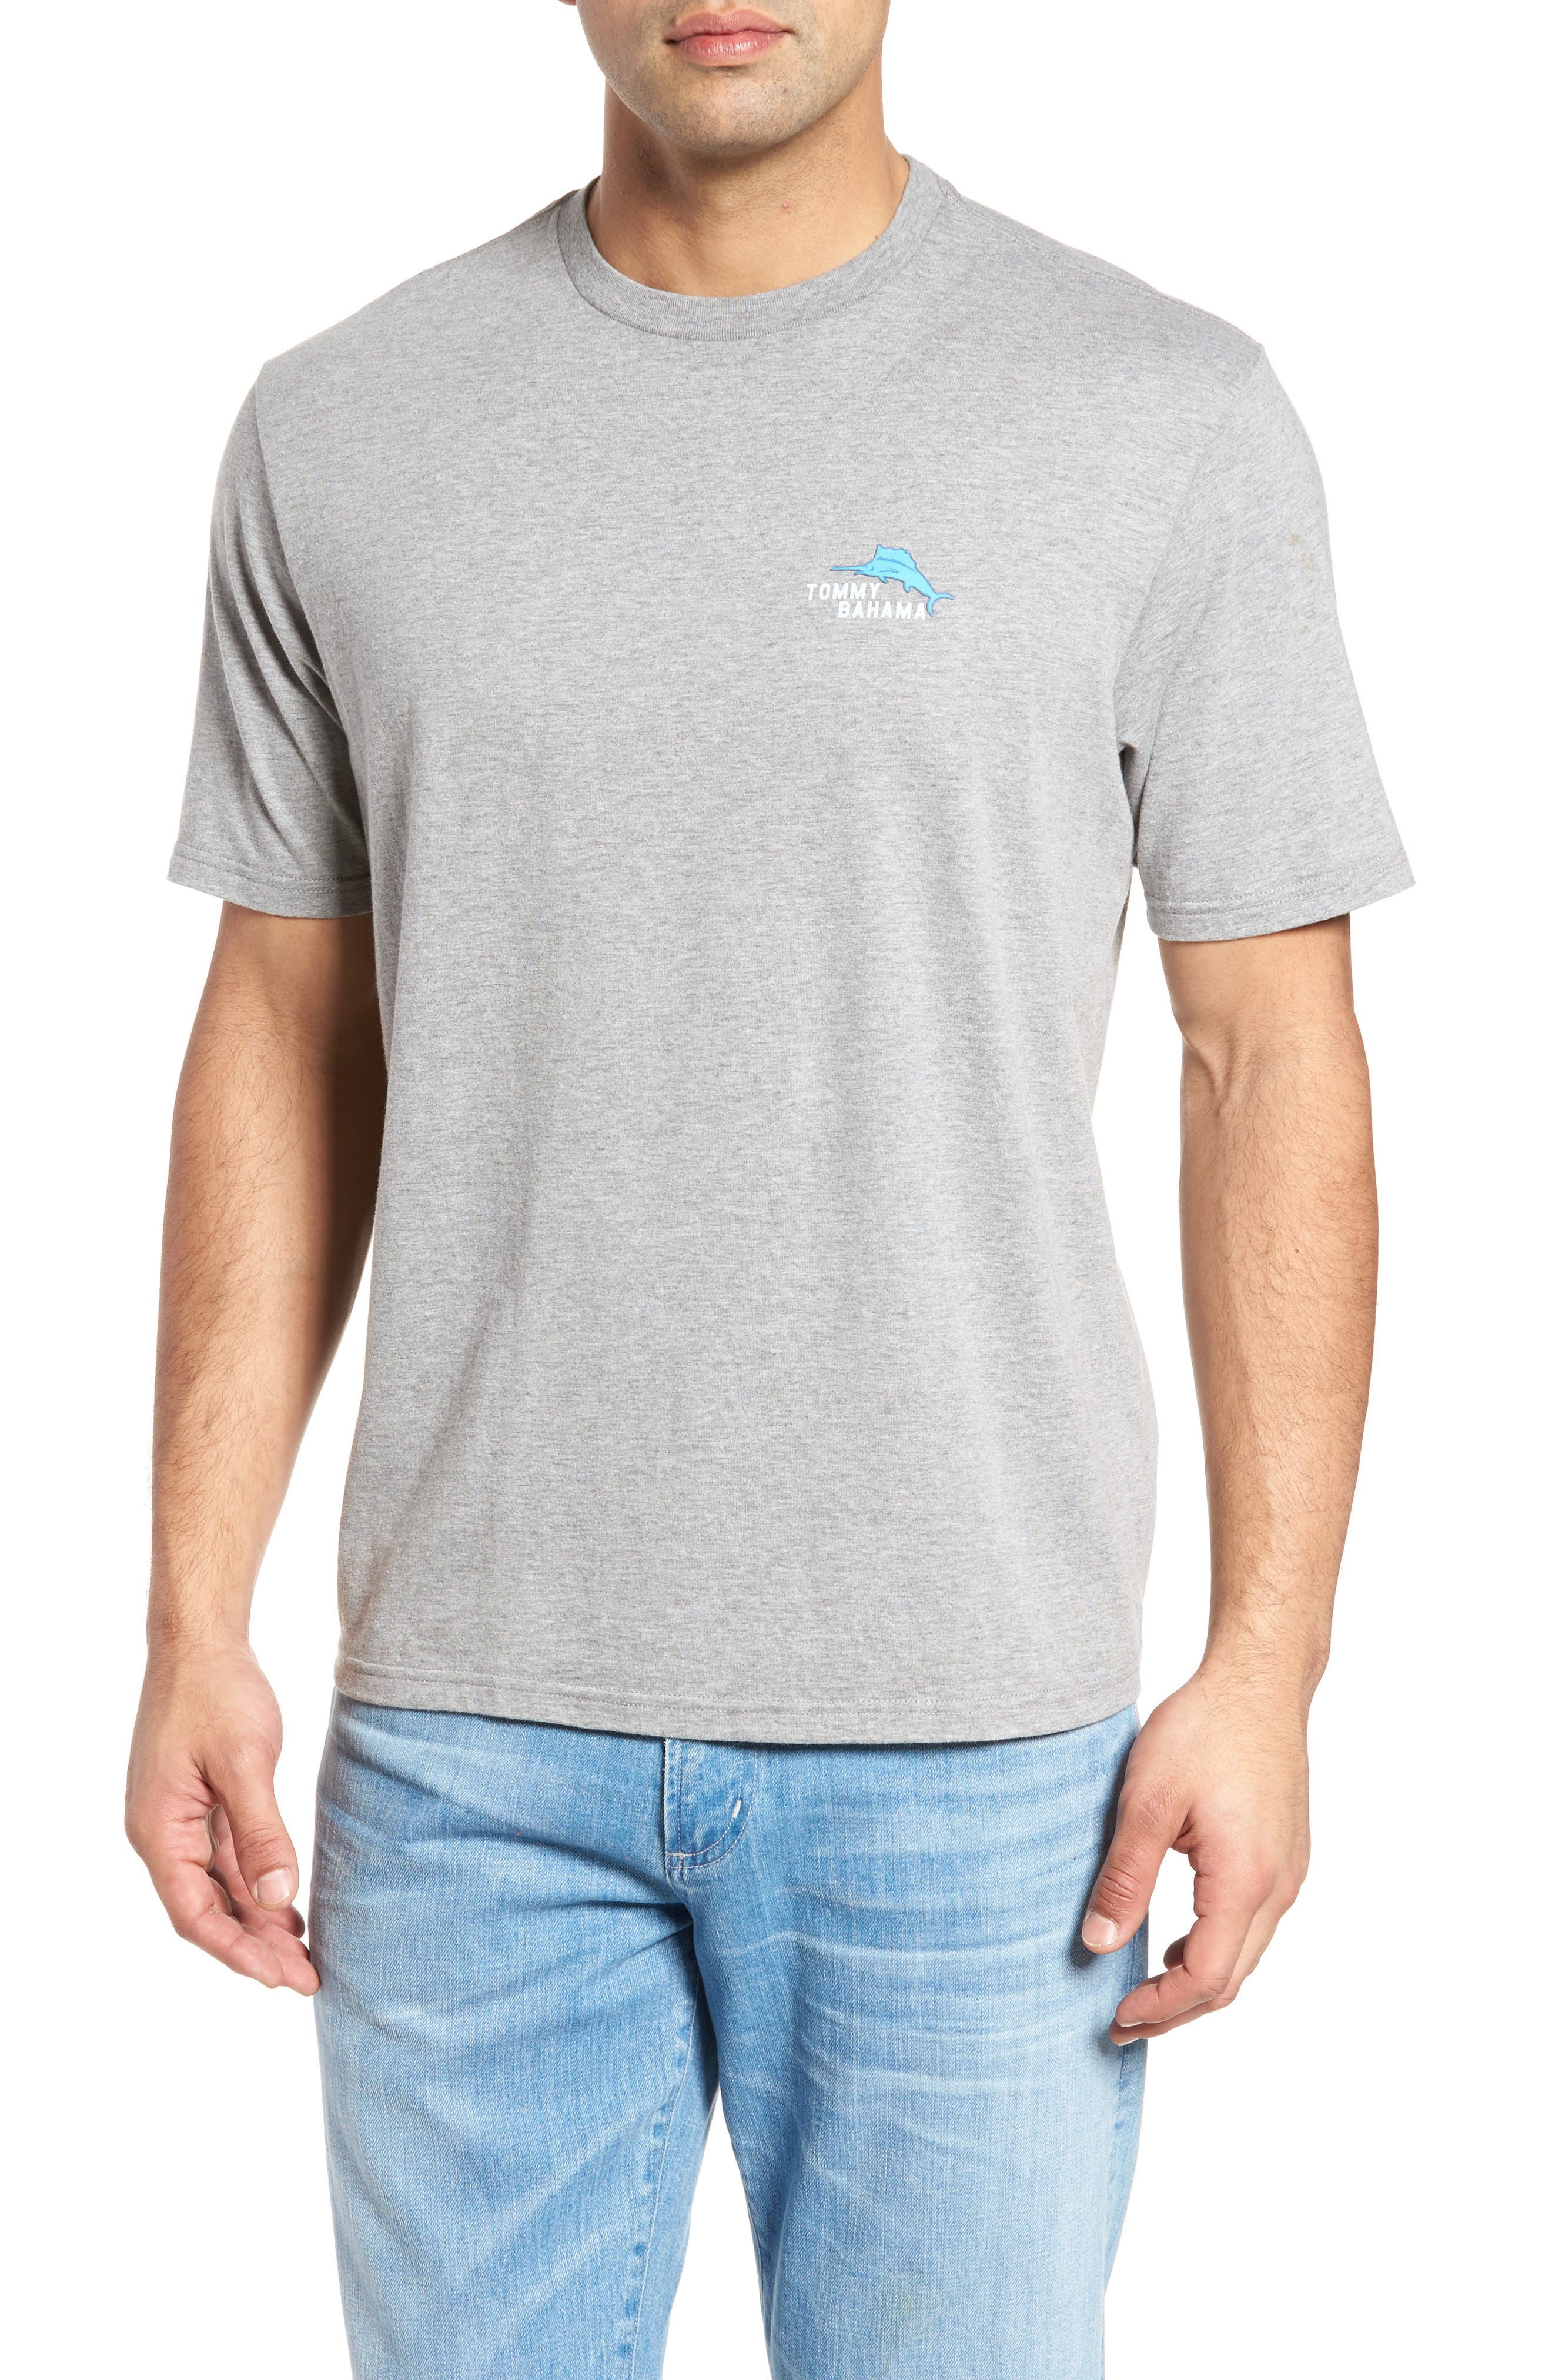 Yer Out T-Shirt,                         Main,                         color, 020